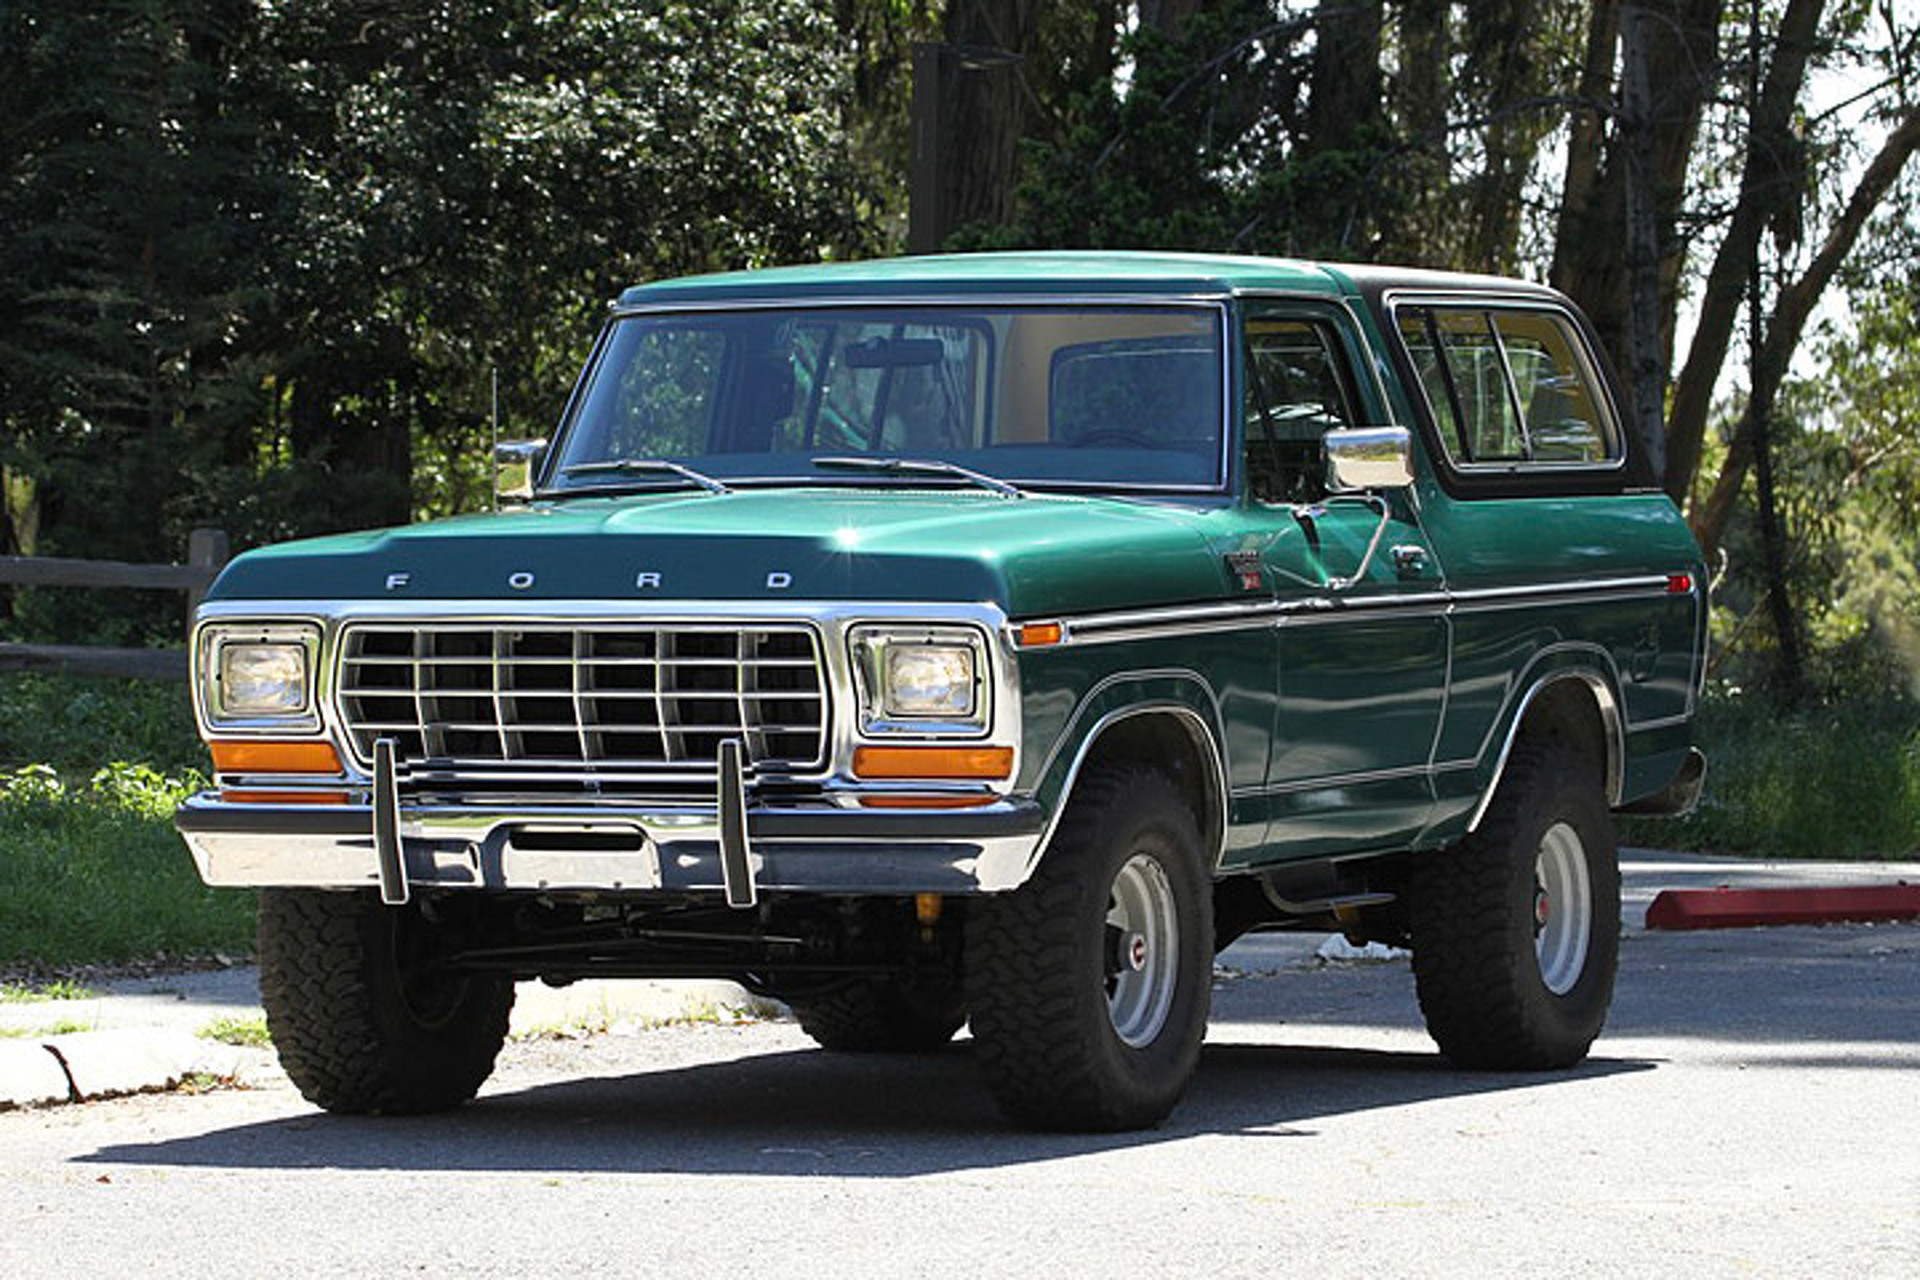 Ford Bronco Ranger Xlt T 1980 If You Cant Wait For The Rumored New Broncowhatever That May Actually Bethen Take A Gander At Todays Nice Price Or Crack Pipe Classic